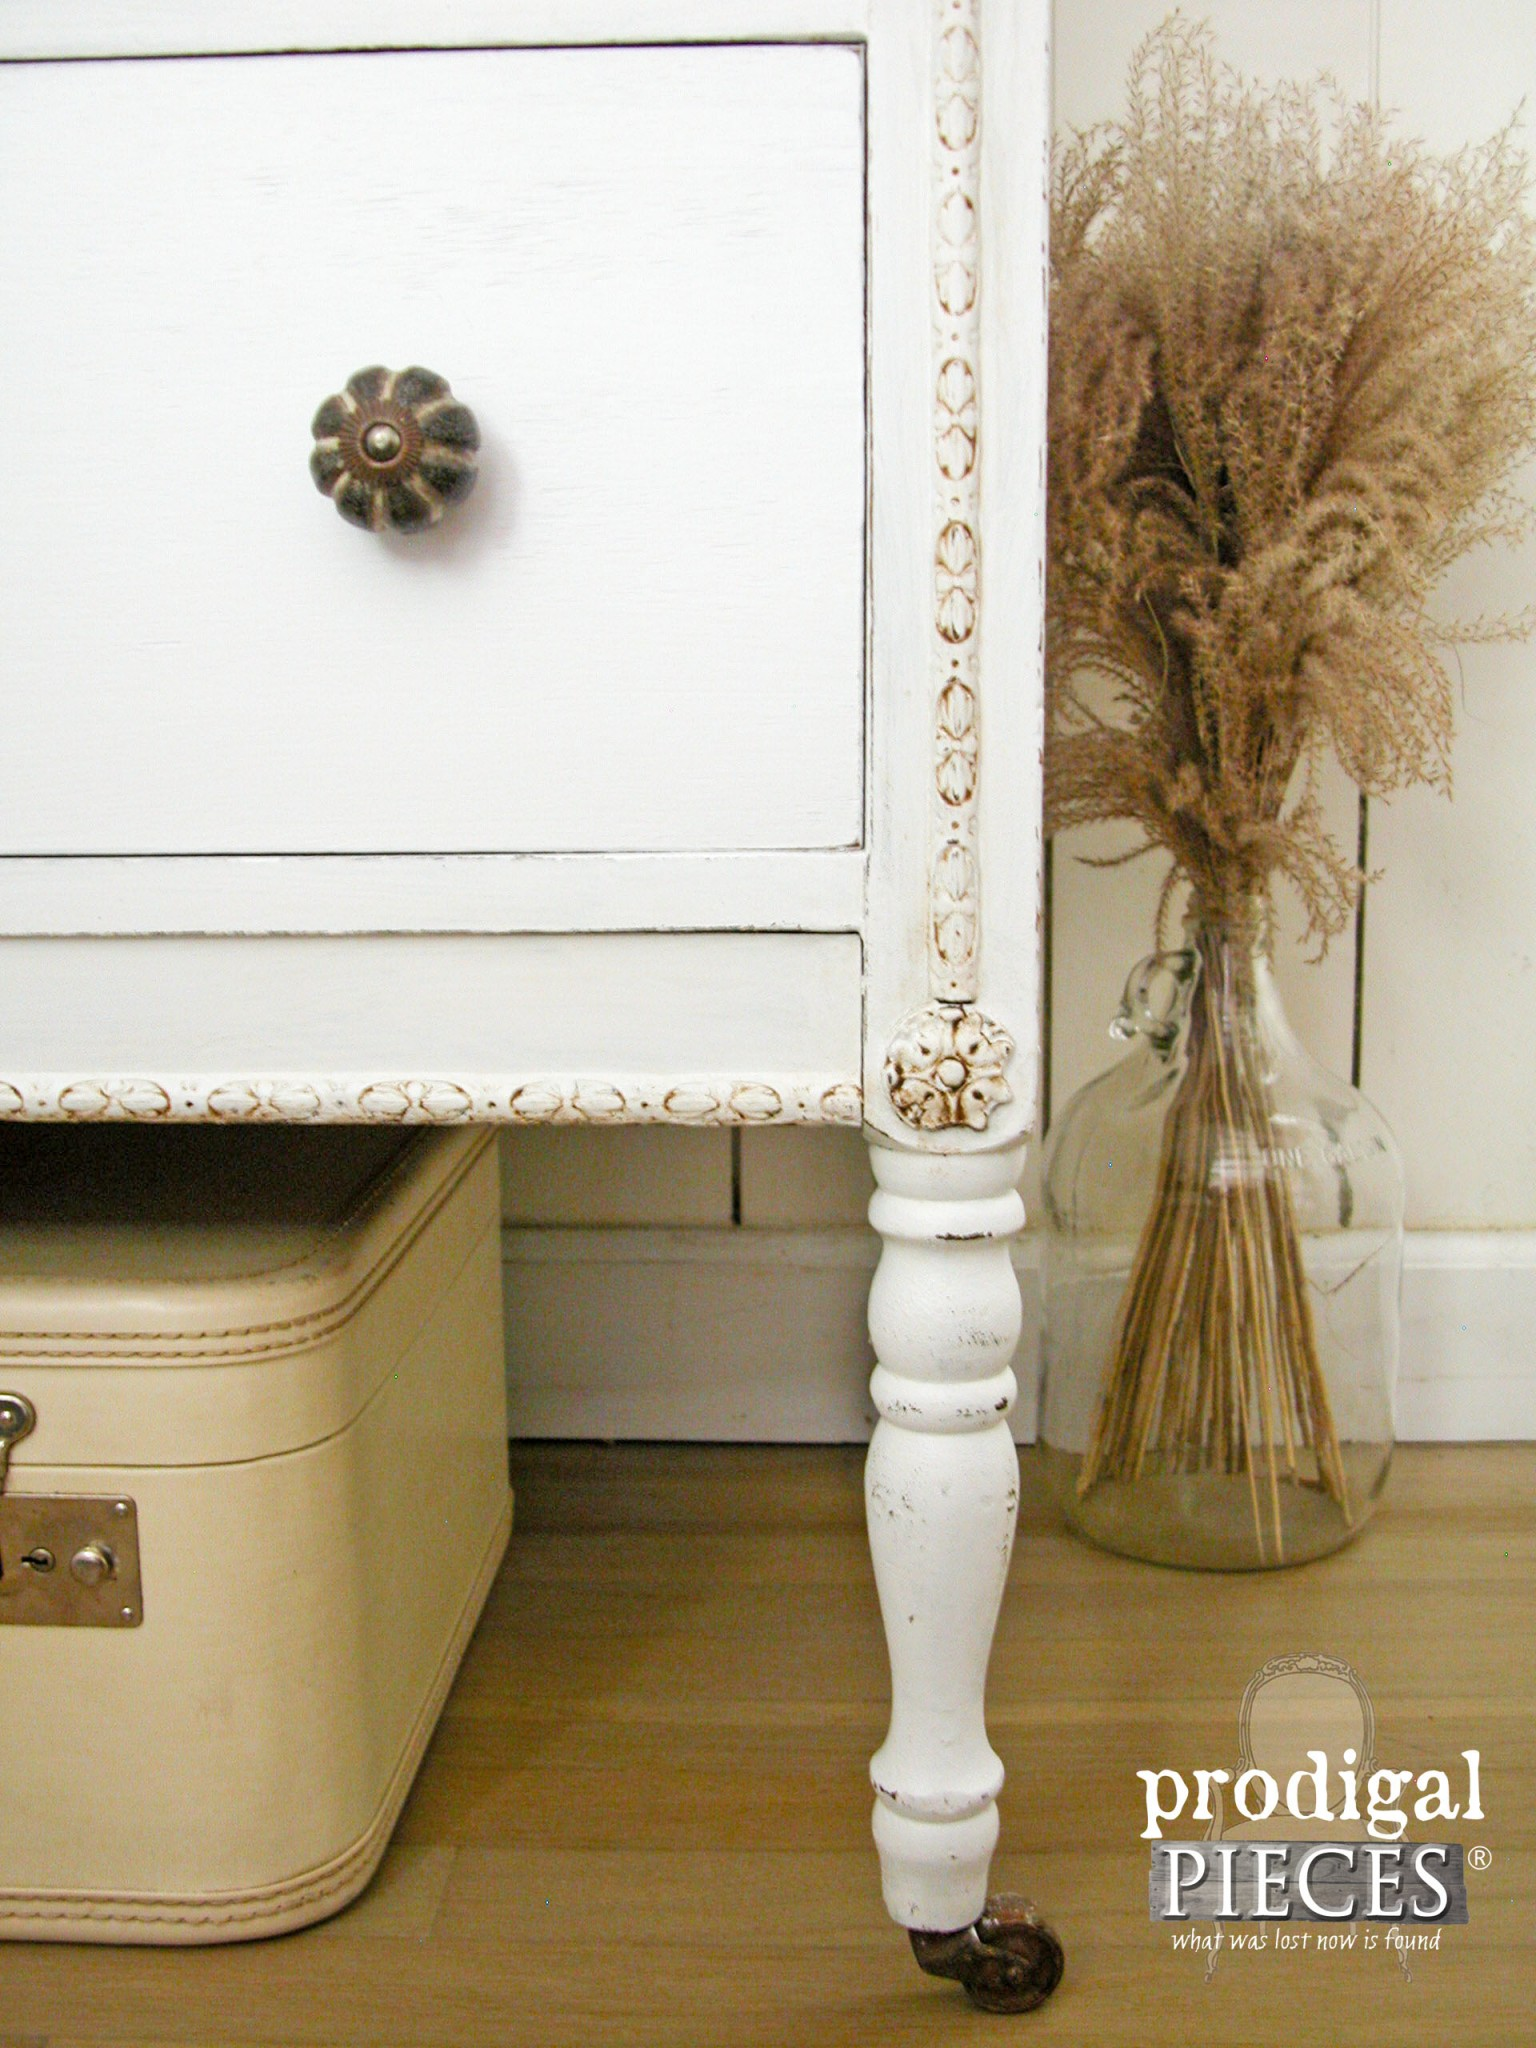 Ornate Details Drawn Our with Dark Wax and Feature Rustic Brands Knobs by Prodigal Pieces | www.prodigalpieces.com